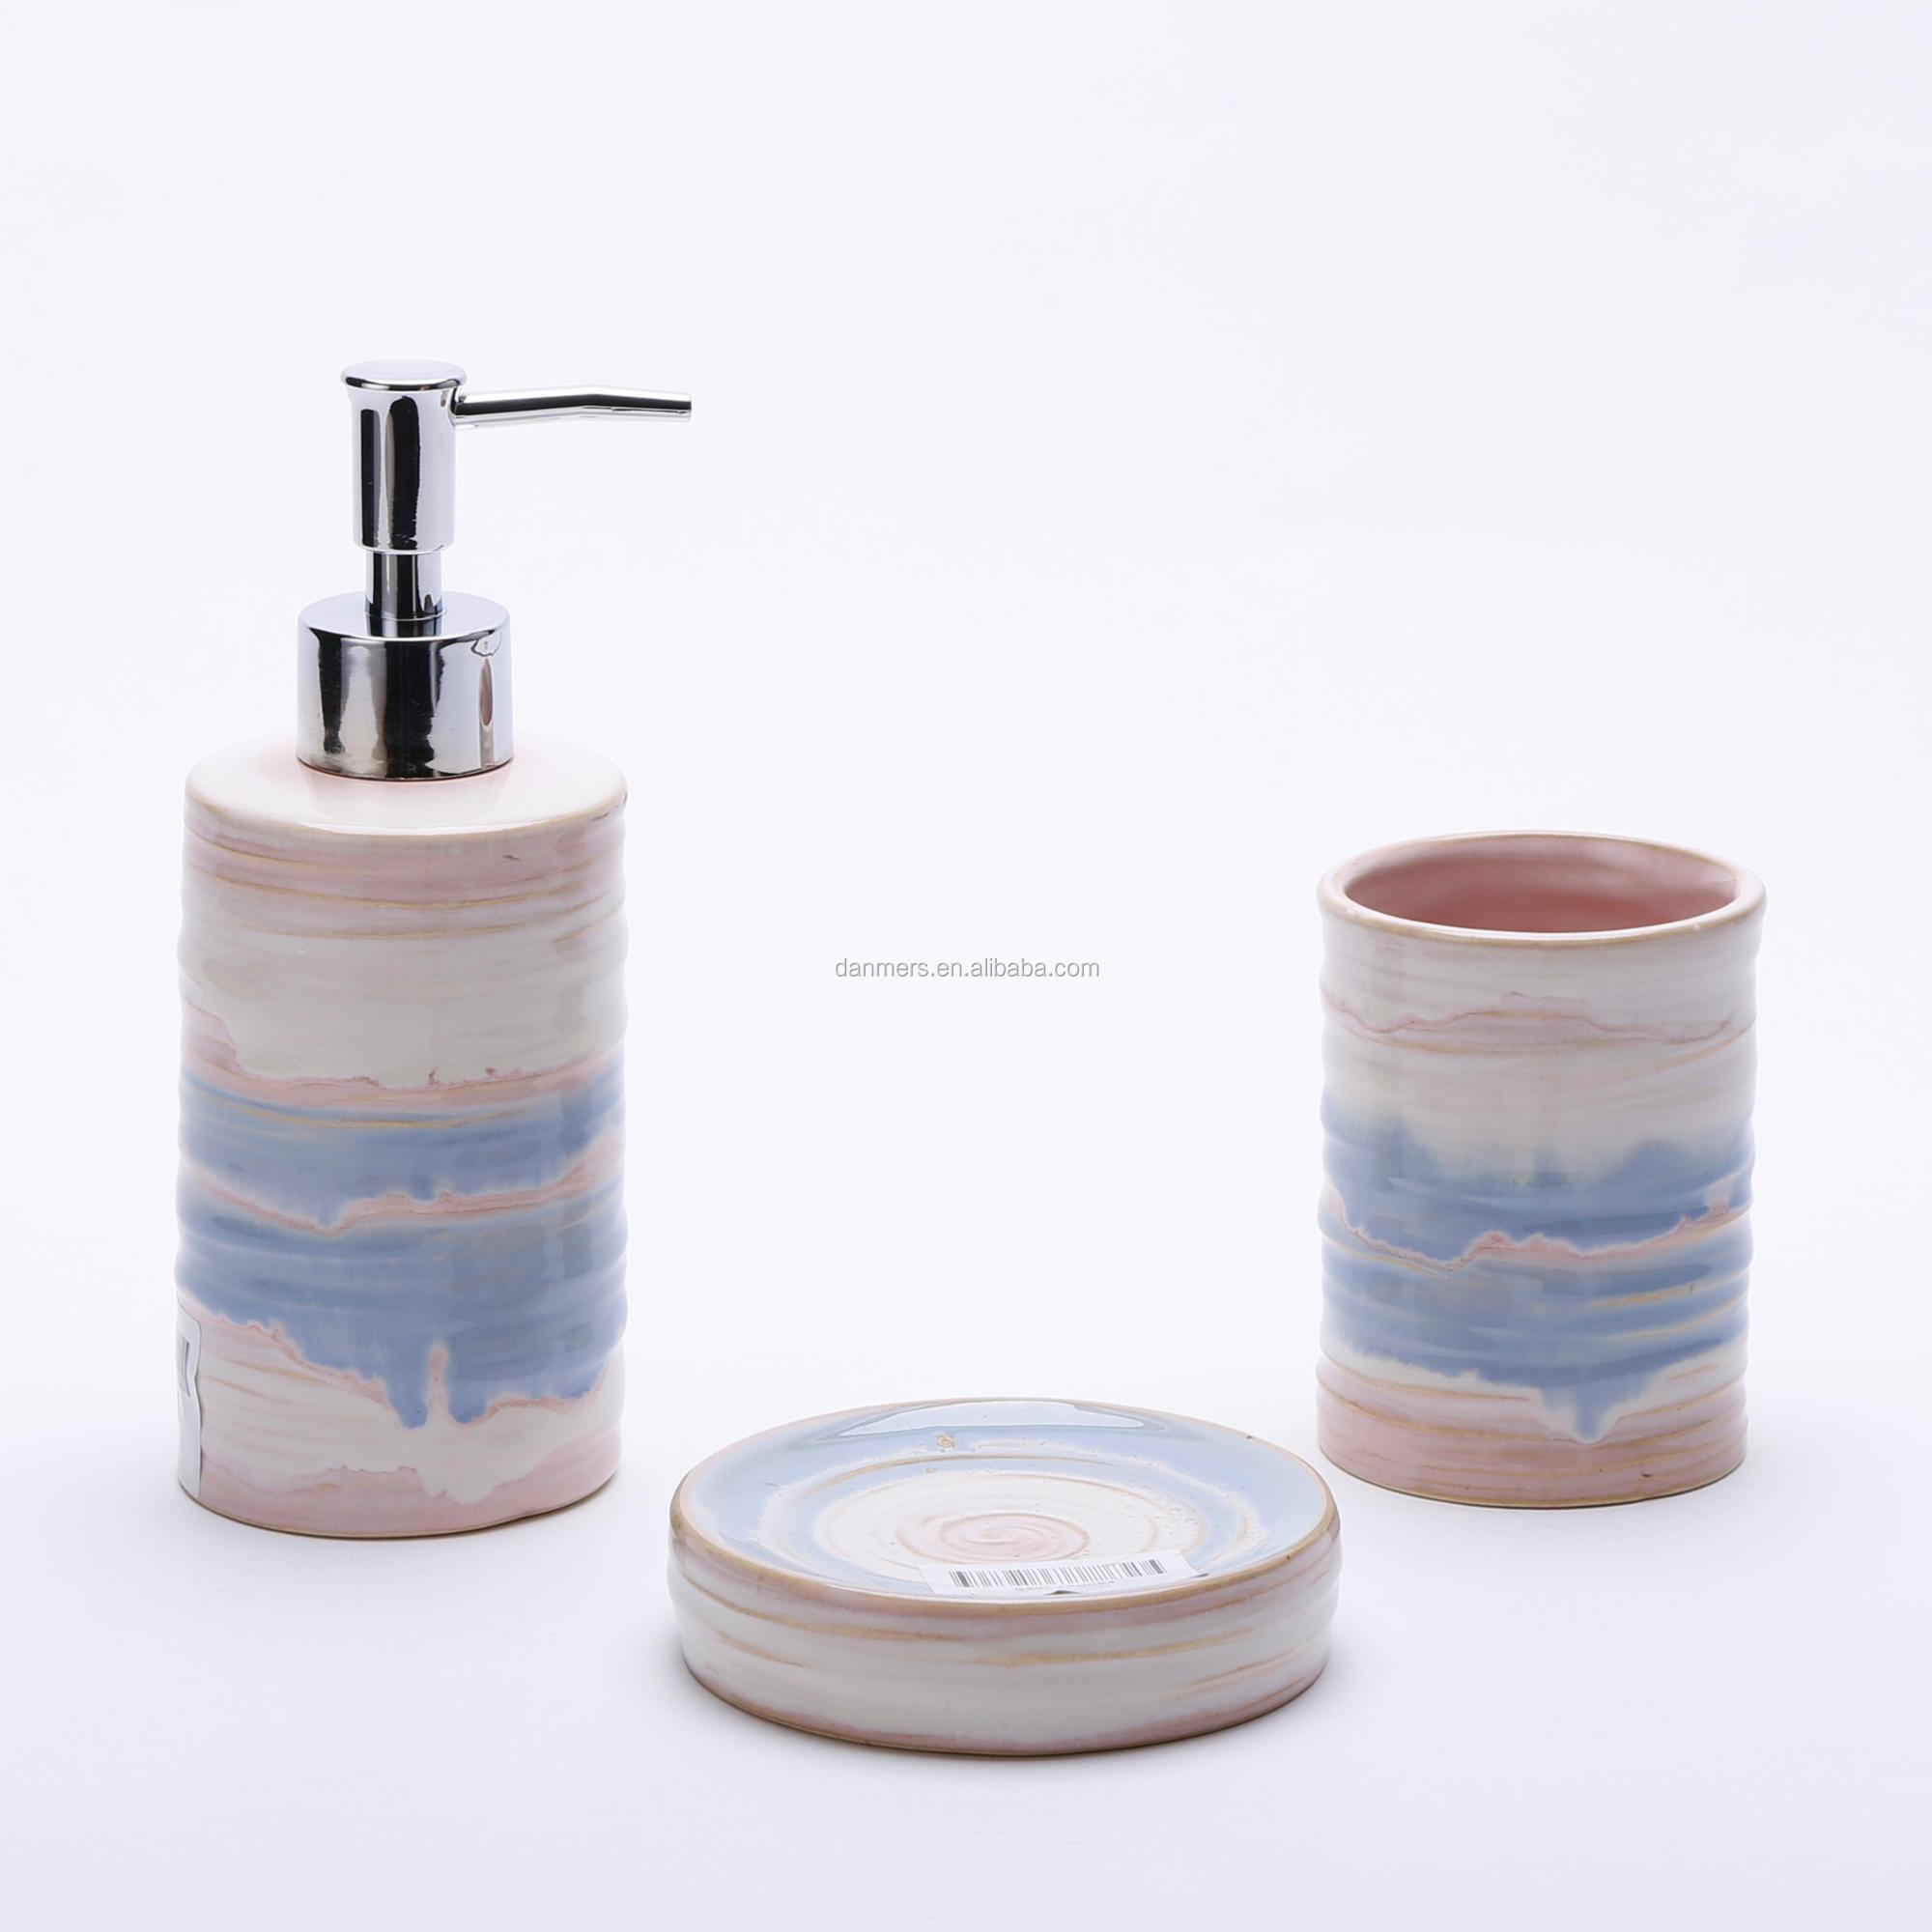 Bathroom Soap And Lotion Dispenser Set on soap dispensing dish sponge, soap and hand towel set, soap container, soap and toothbrush holder set, mason jar storage set, soap dish set red, soap dish bed bath beyond, kitchen sink with soap lotion caddy set, soap and towel dispenser keys, soap and sponge, soap dispenser and toothbrush holder, soap lotion toothpaste,